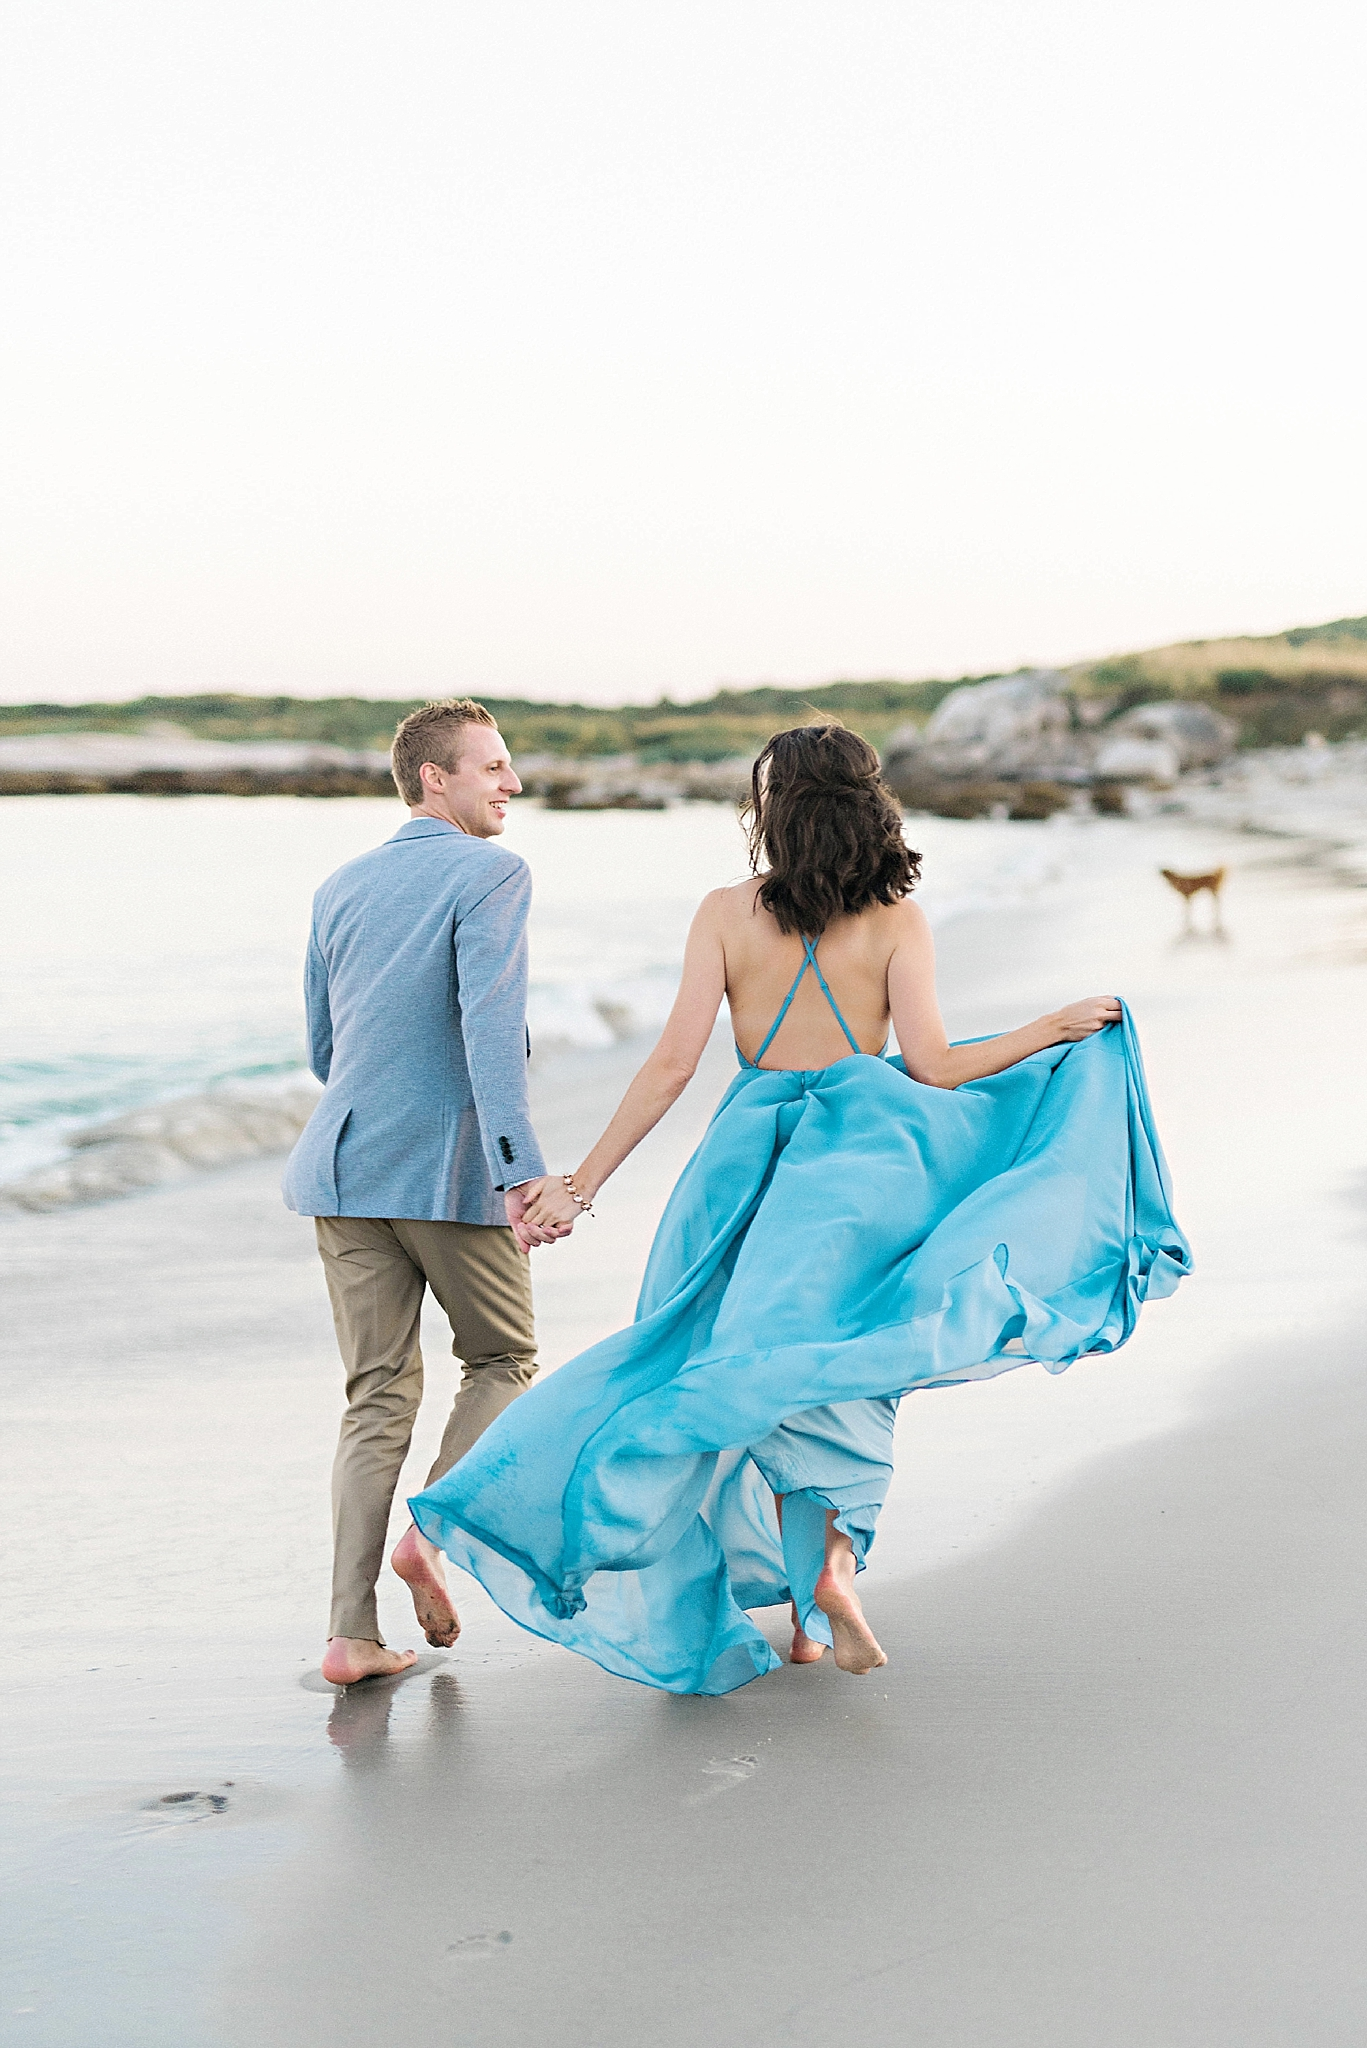 Romantic Seaside Beach Engagement Shoot in Lulu's long flowy maxy dress_033.jpg